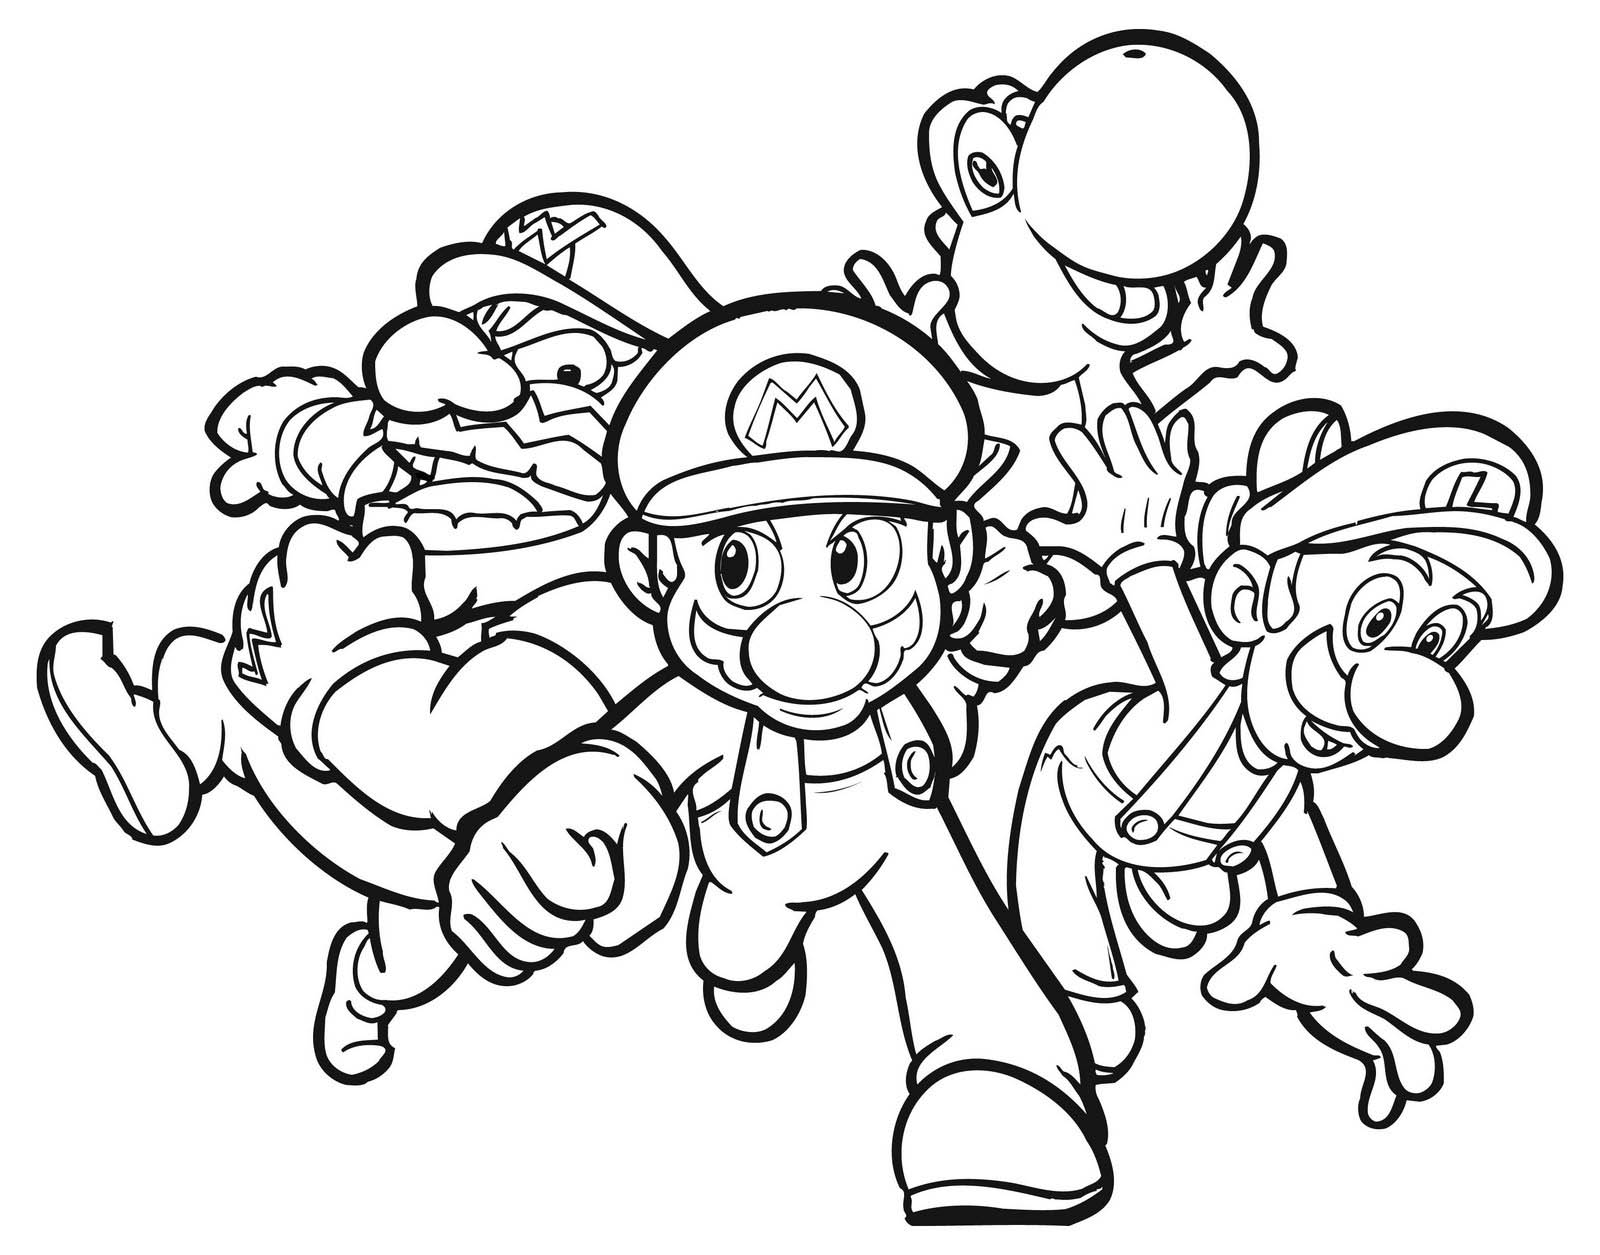 Dynamite image with regard to printable mario coloring pages